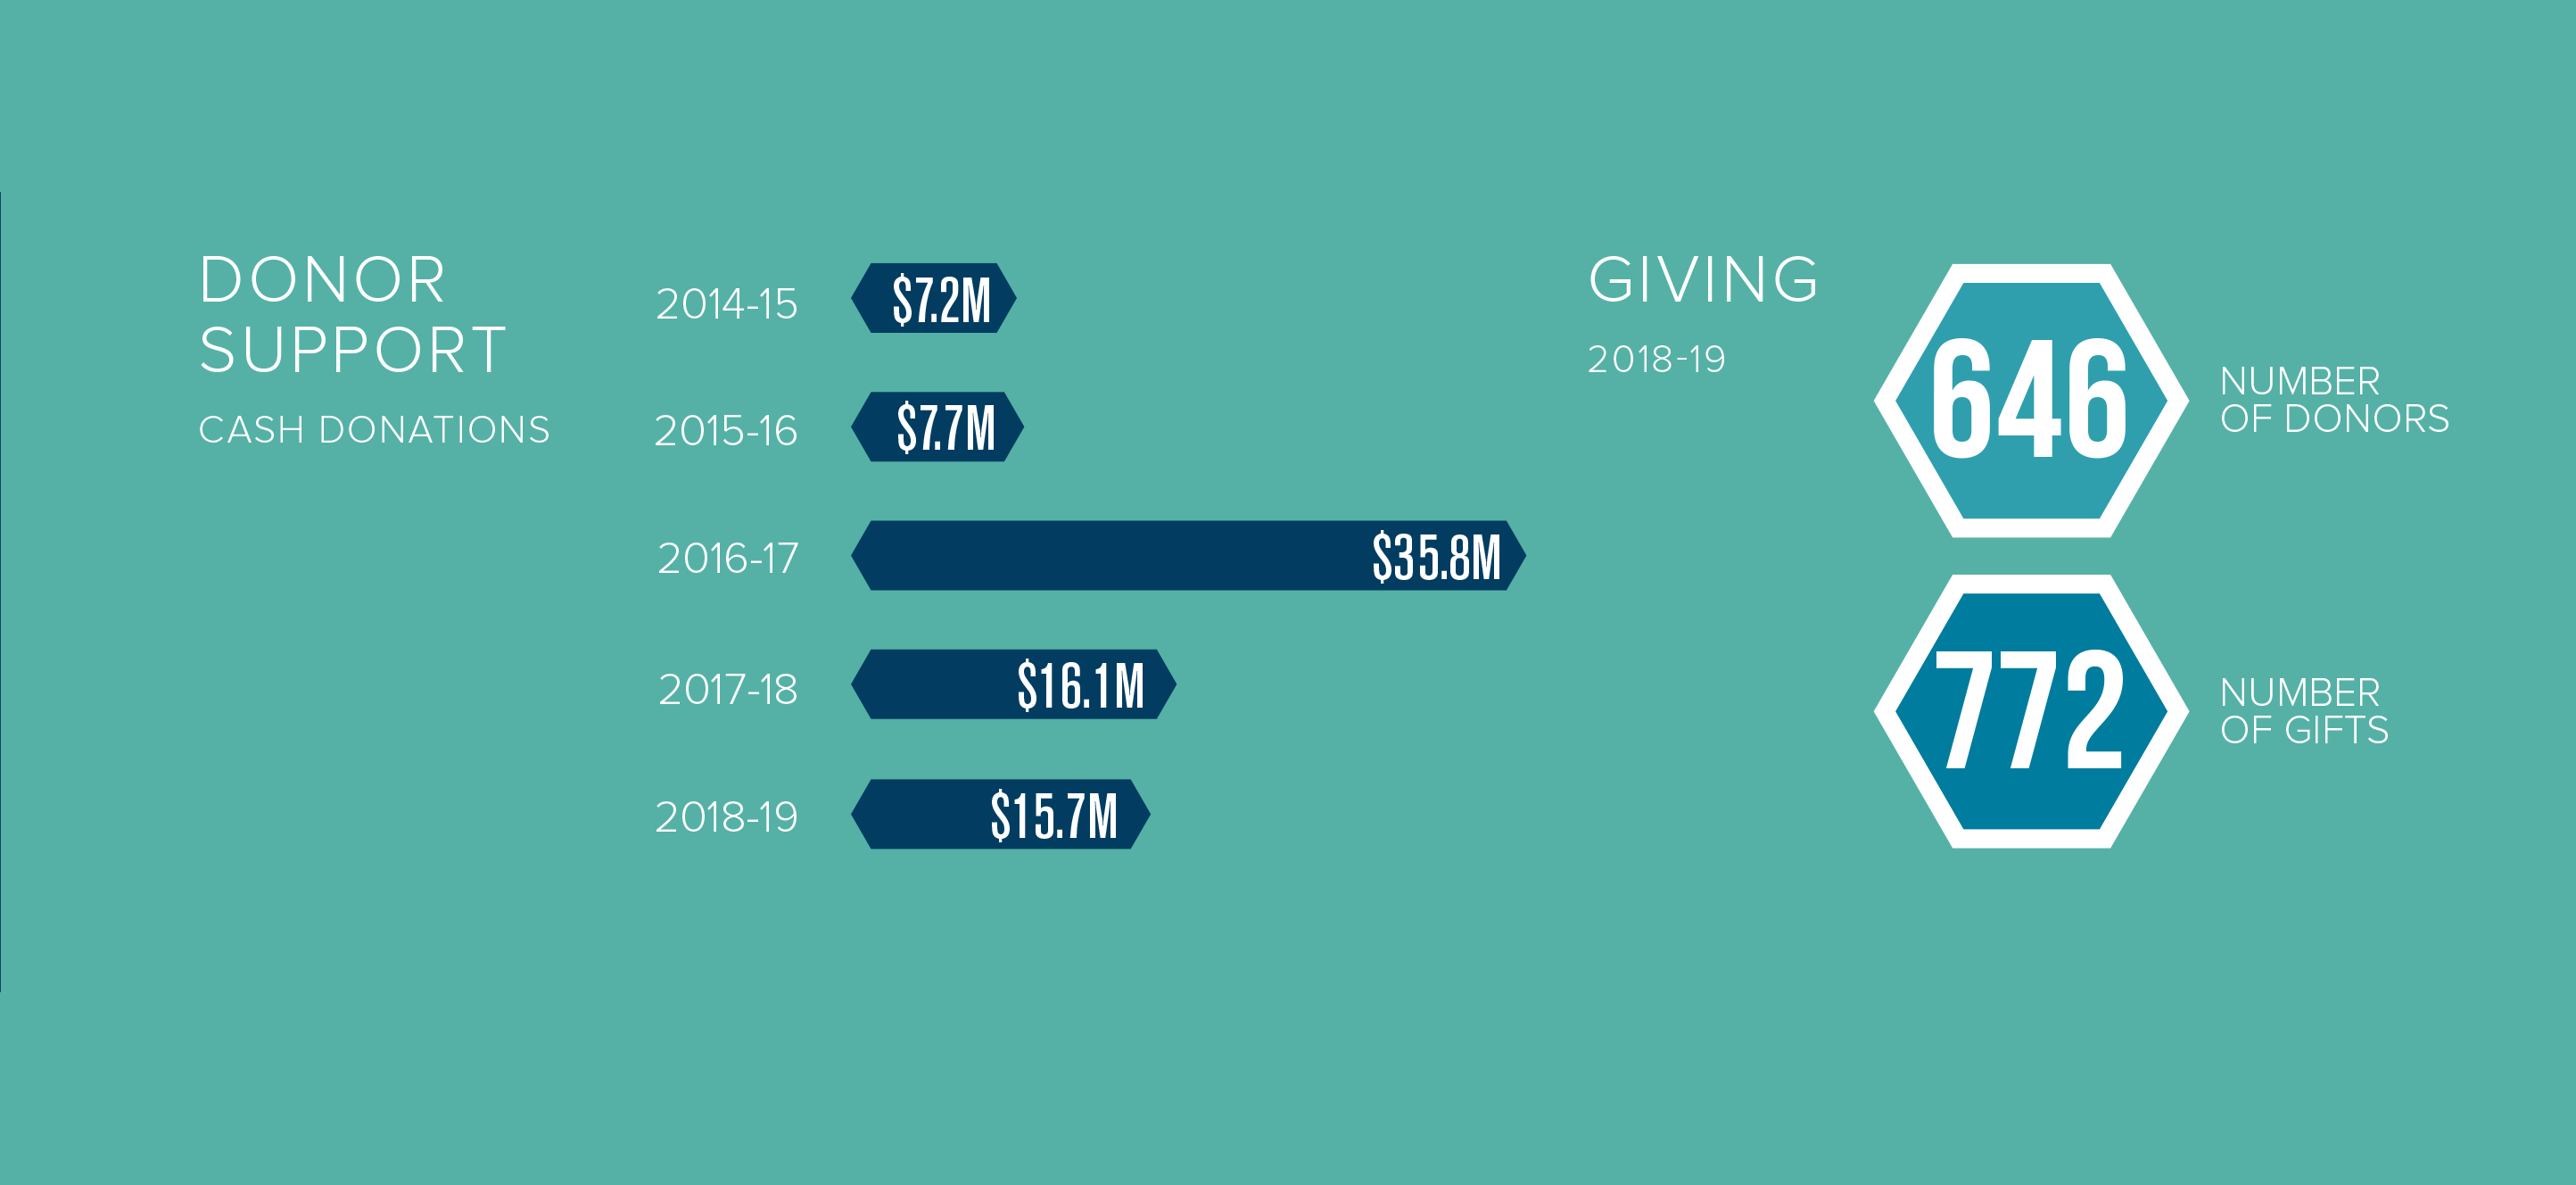 2019 Donor Support